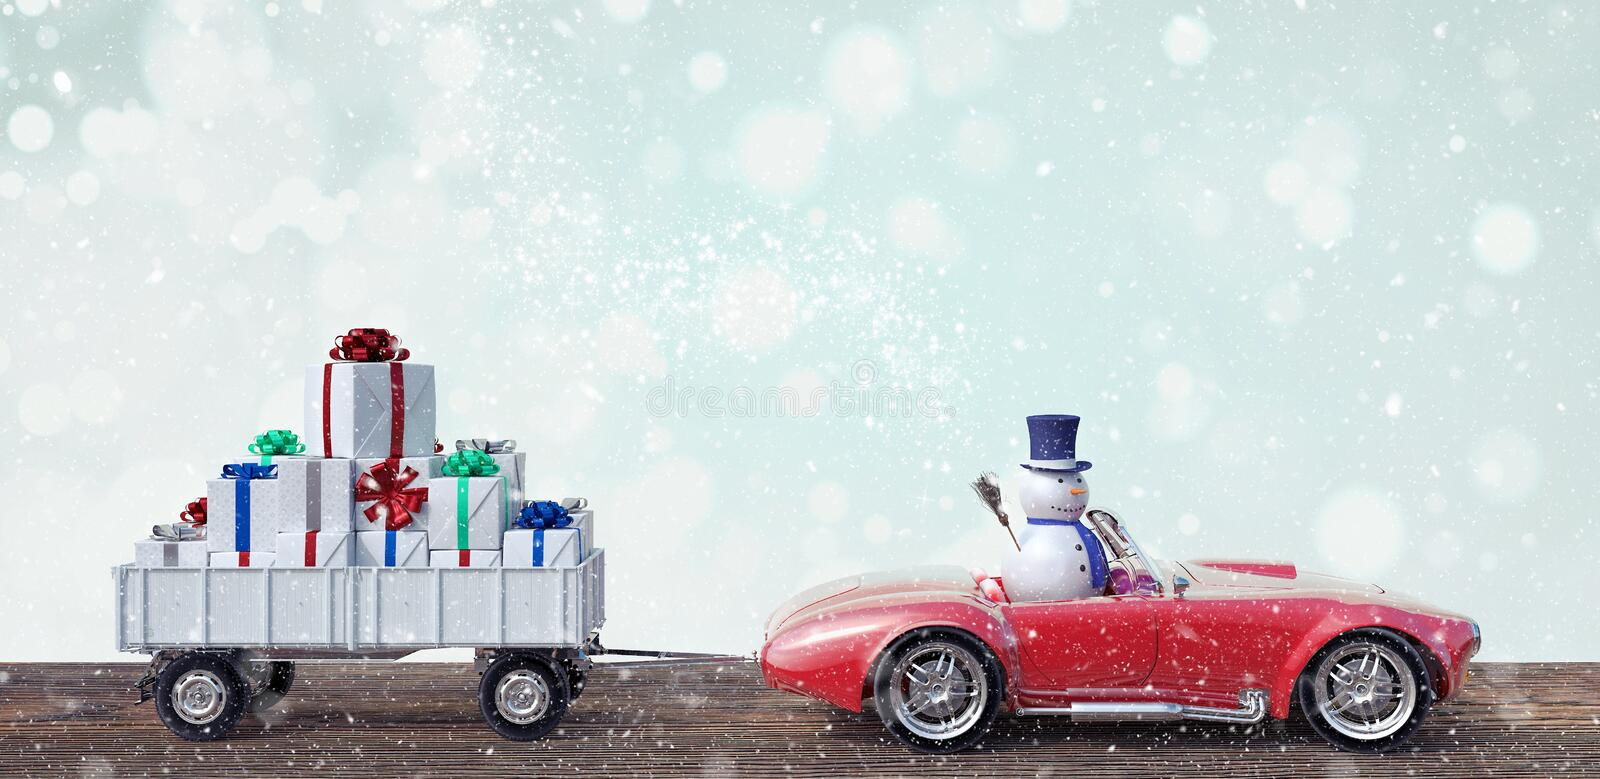 Snowman in Red Car Carrying Christmas Gifts 3d render stock illustration